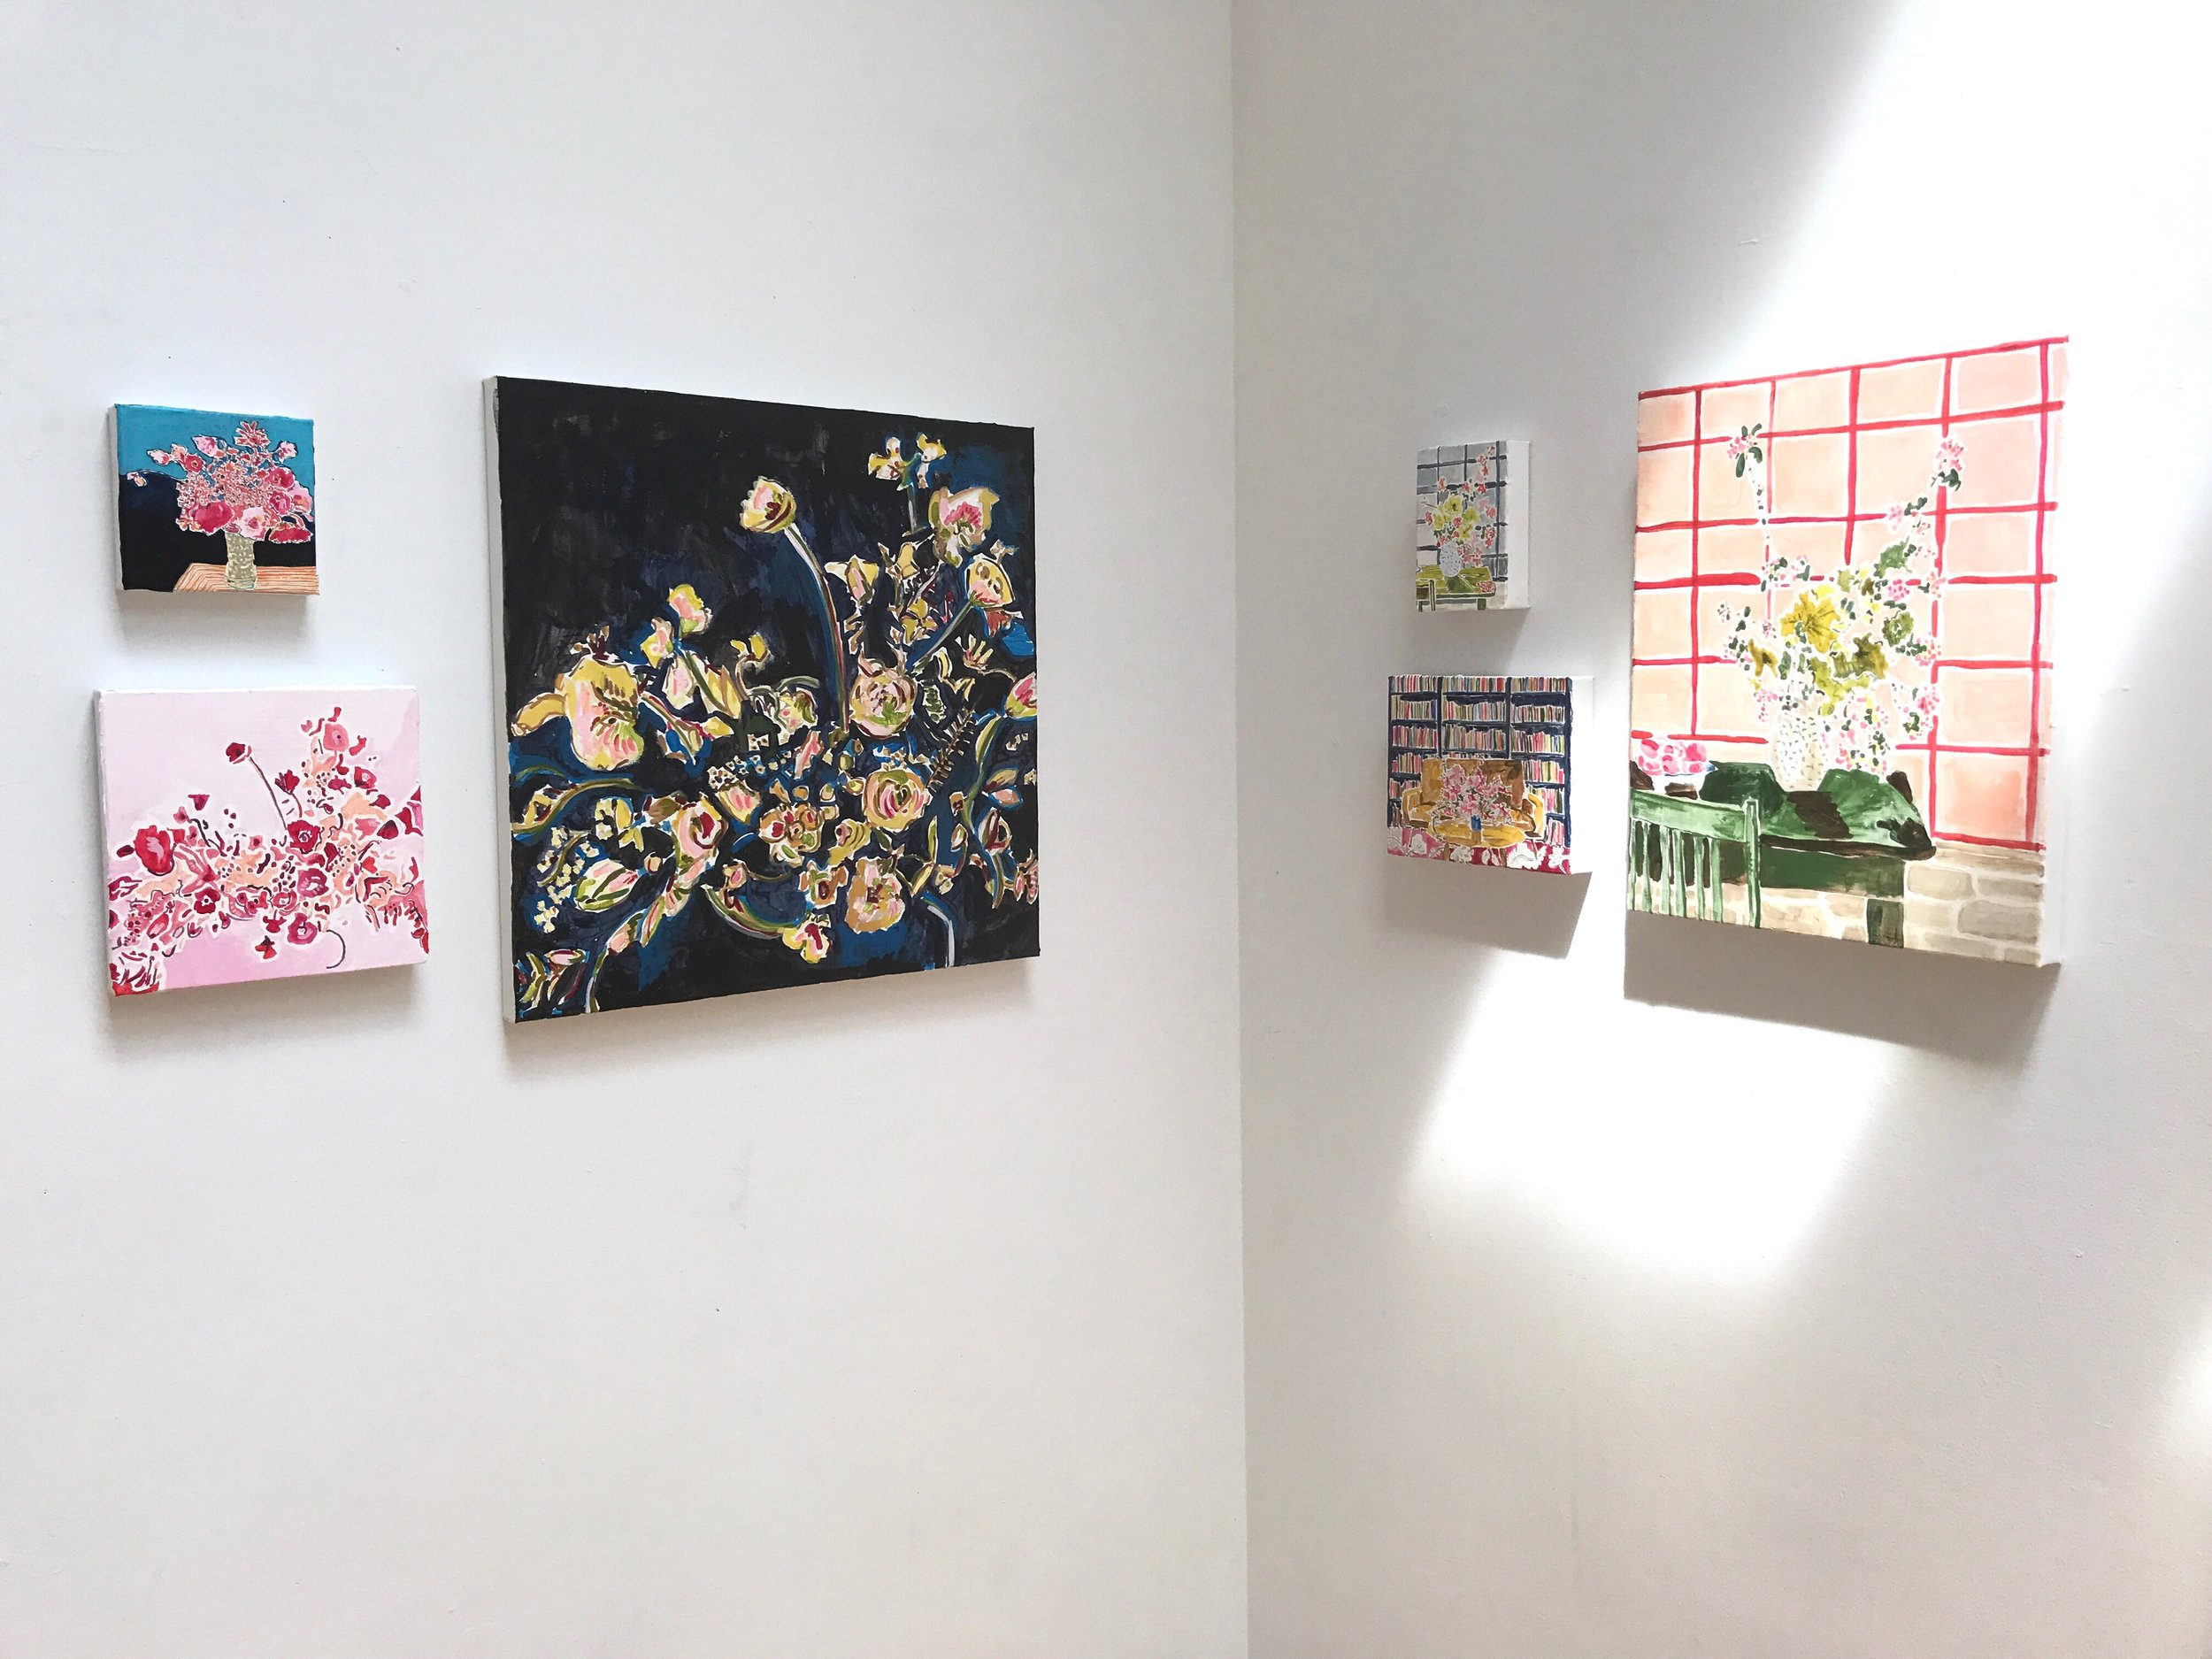 Small interiors and florals on stretched canvas created my first days of the residency.